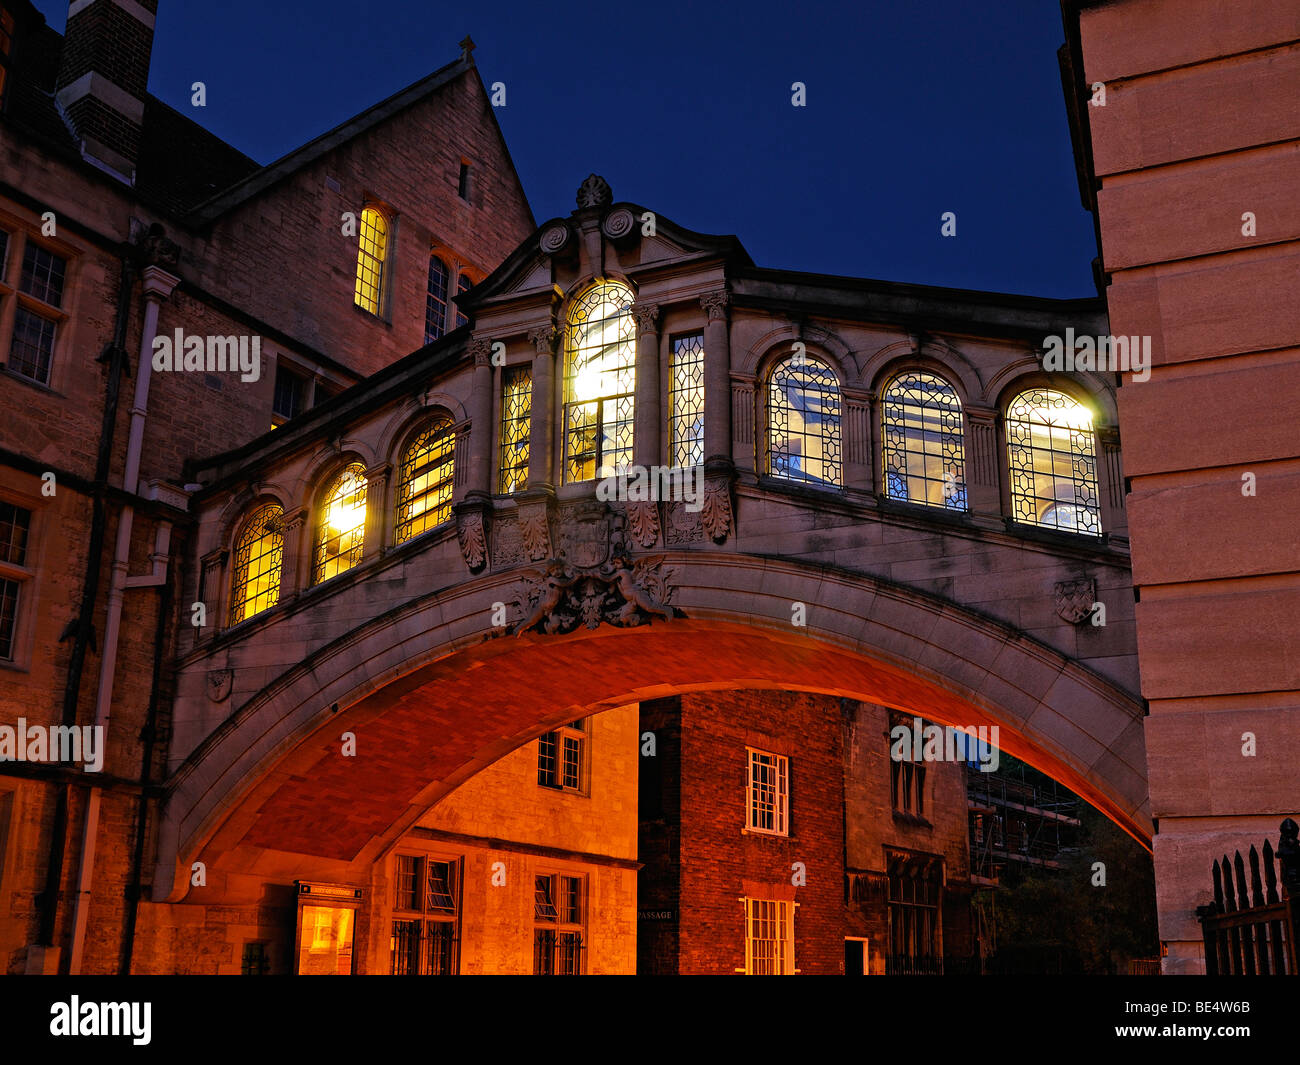 Bridge of Sighs, New College Lane, Oxford, England, United Kingdom. - Stock Image